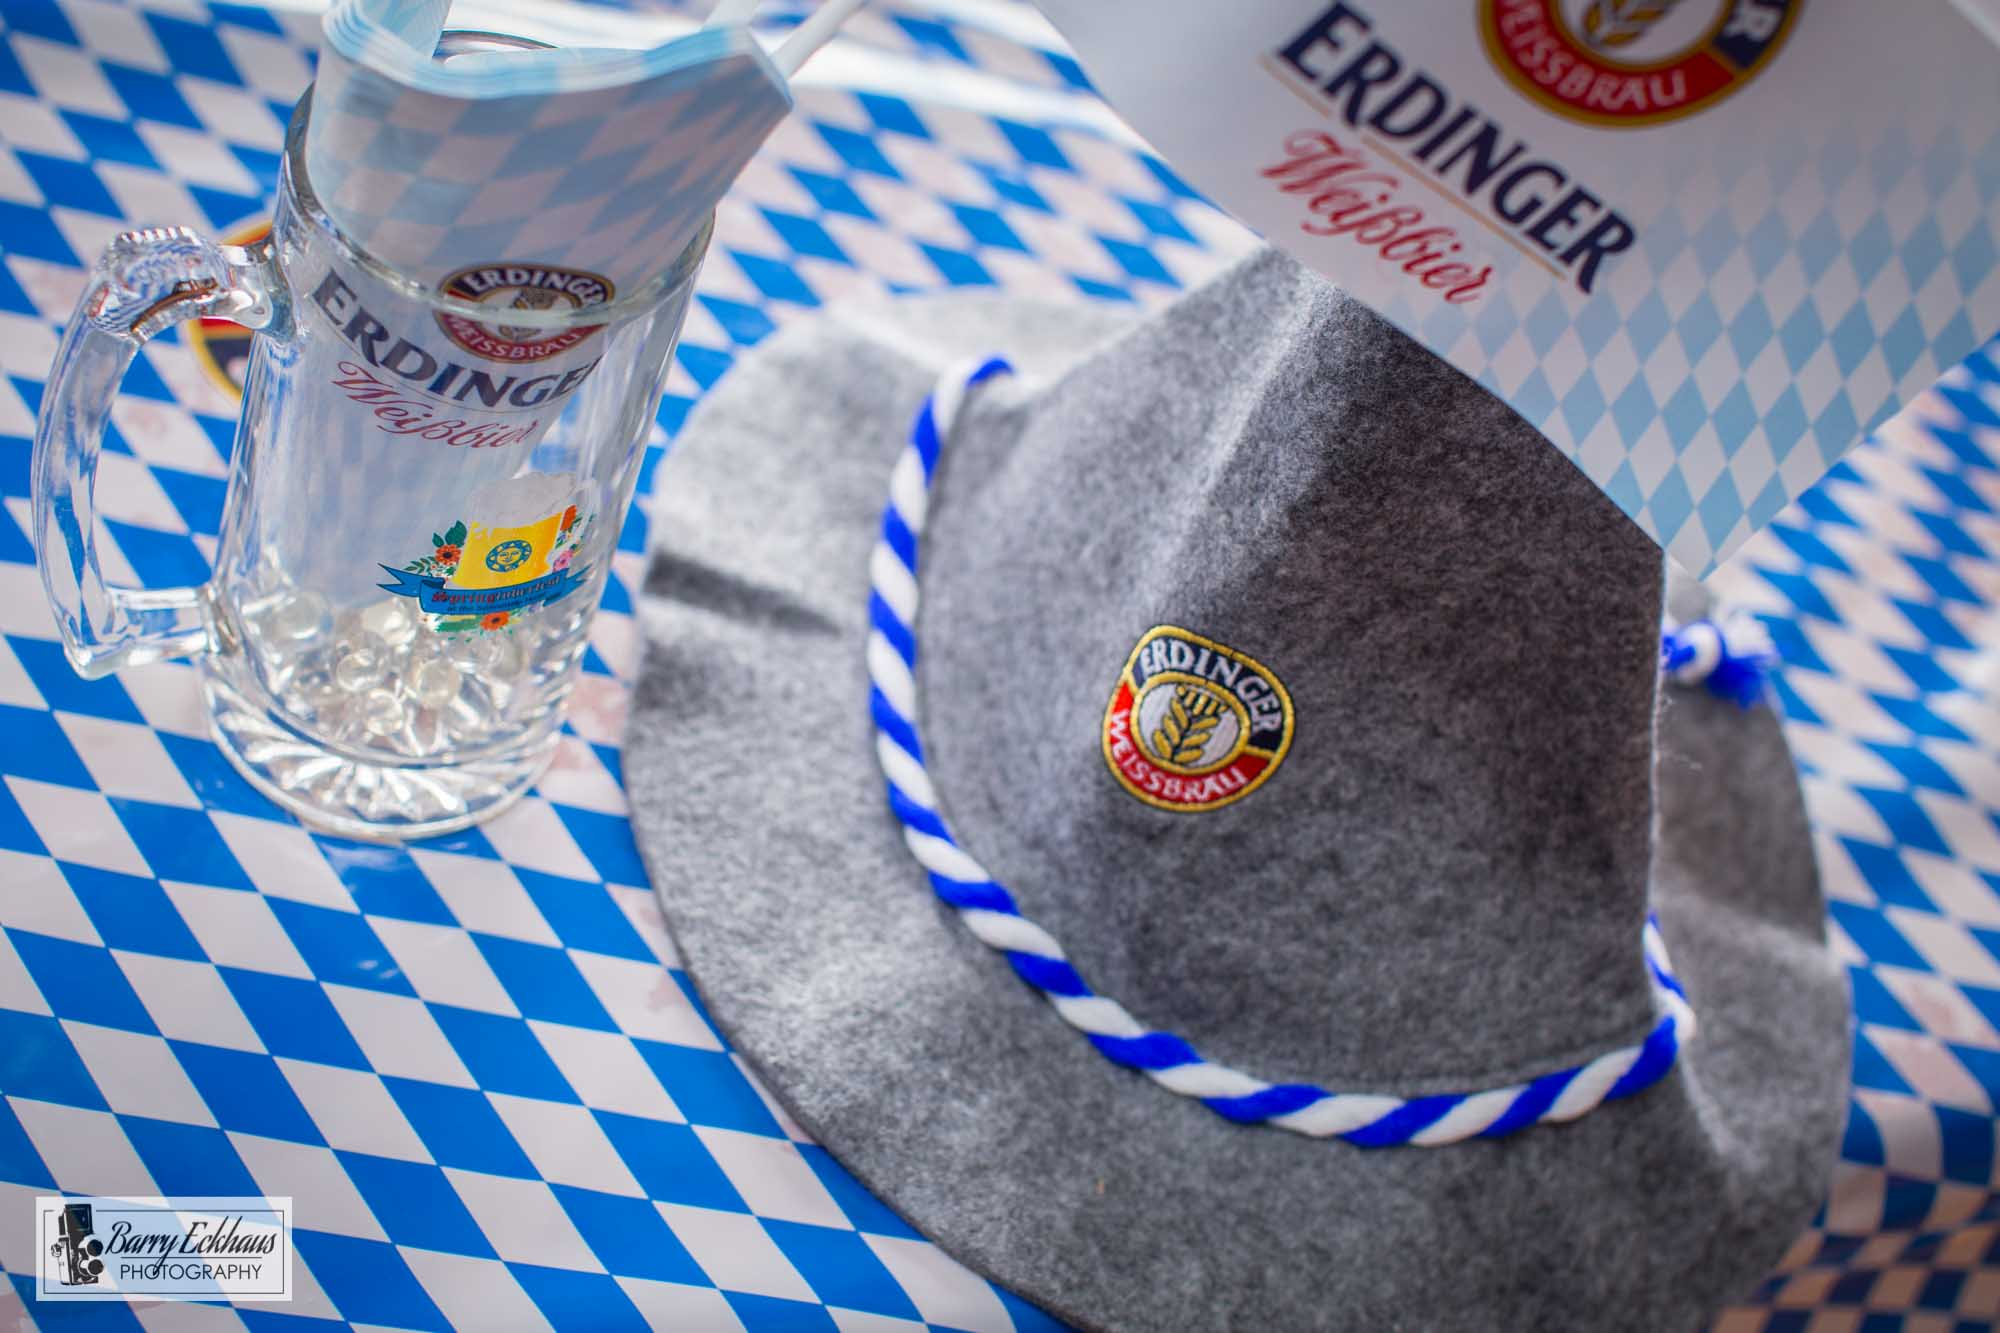 Event set up photography for Octoberfest at the Sonnenalp Resort in Vail, Colorado.